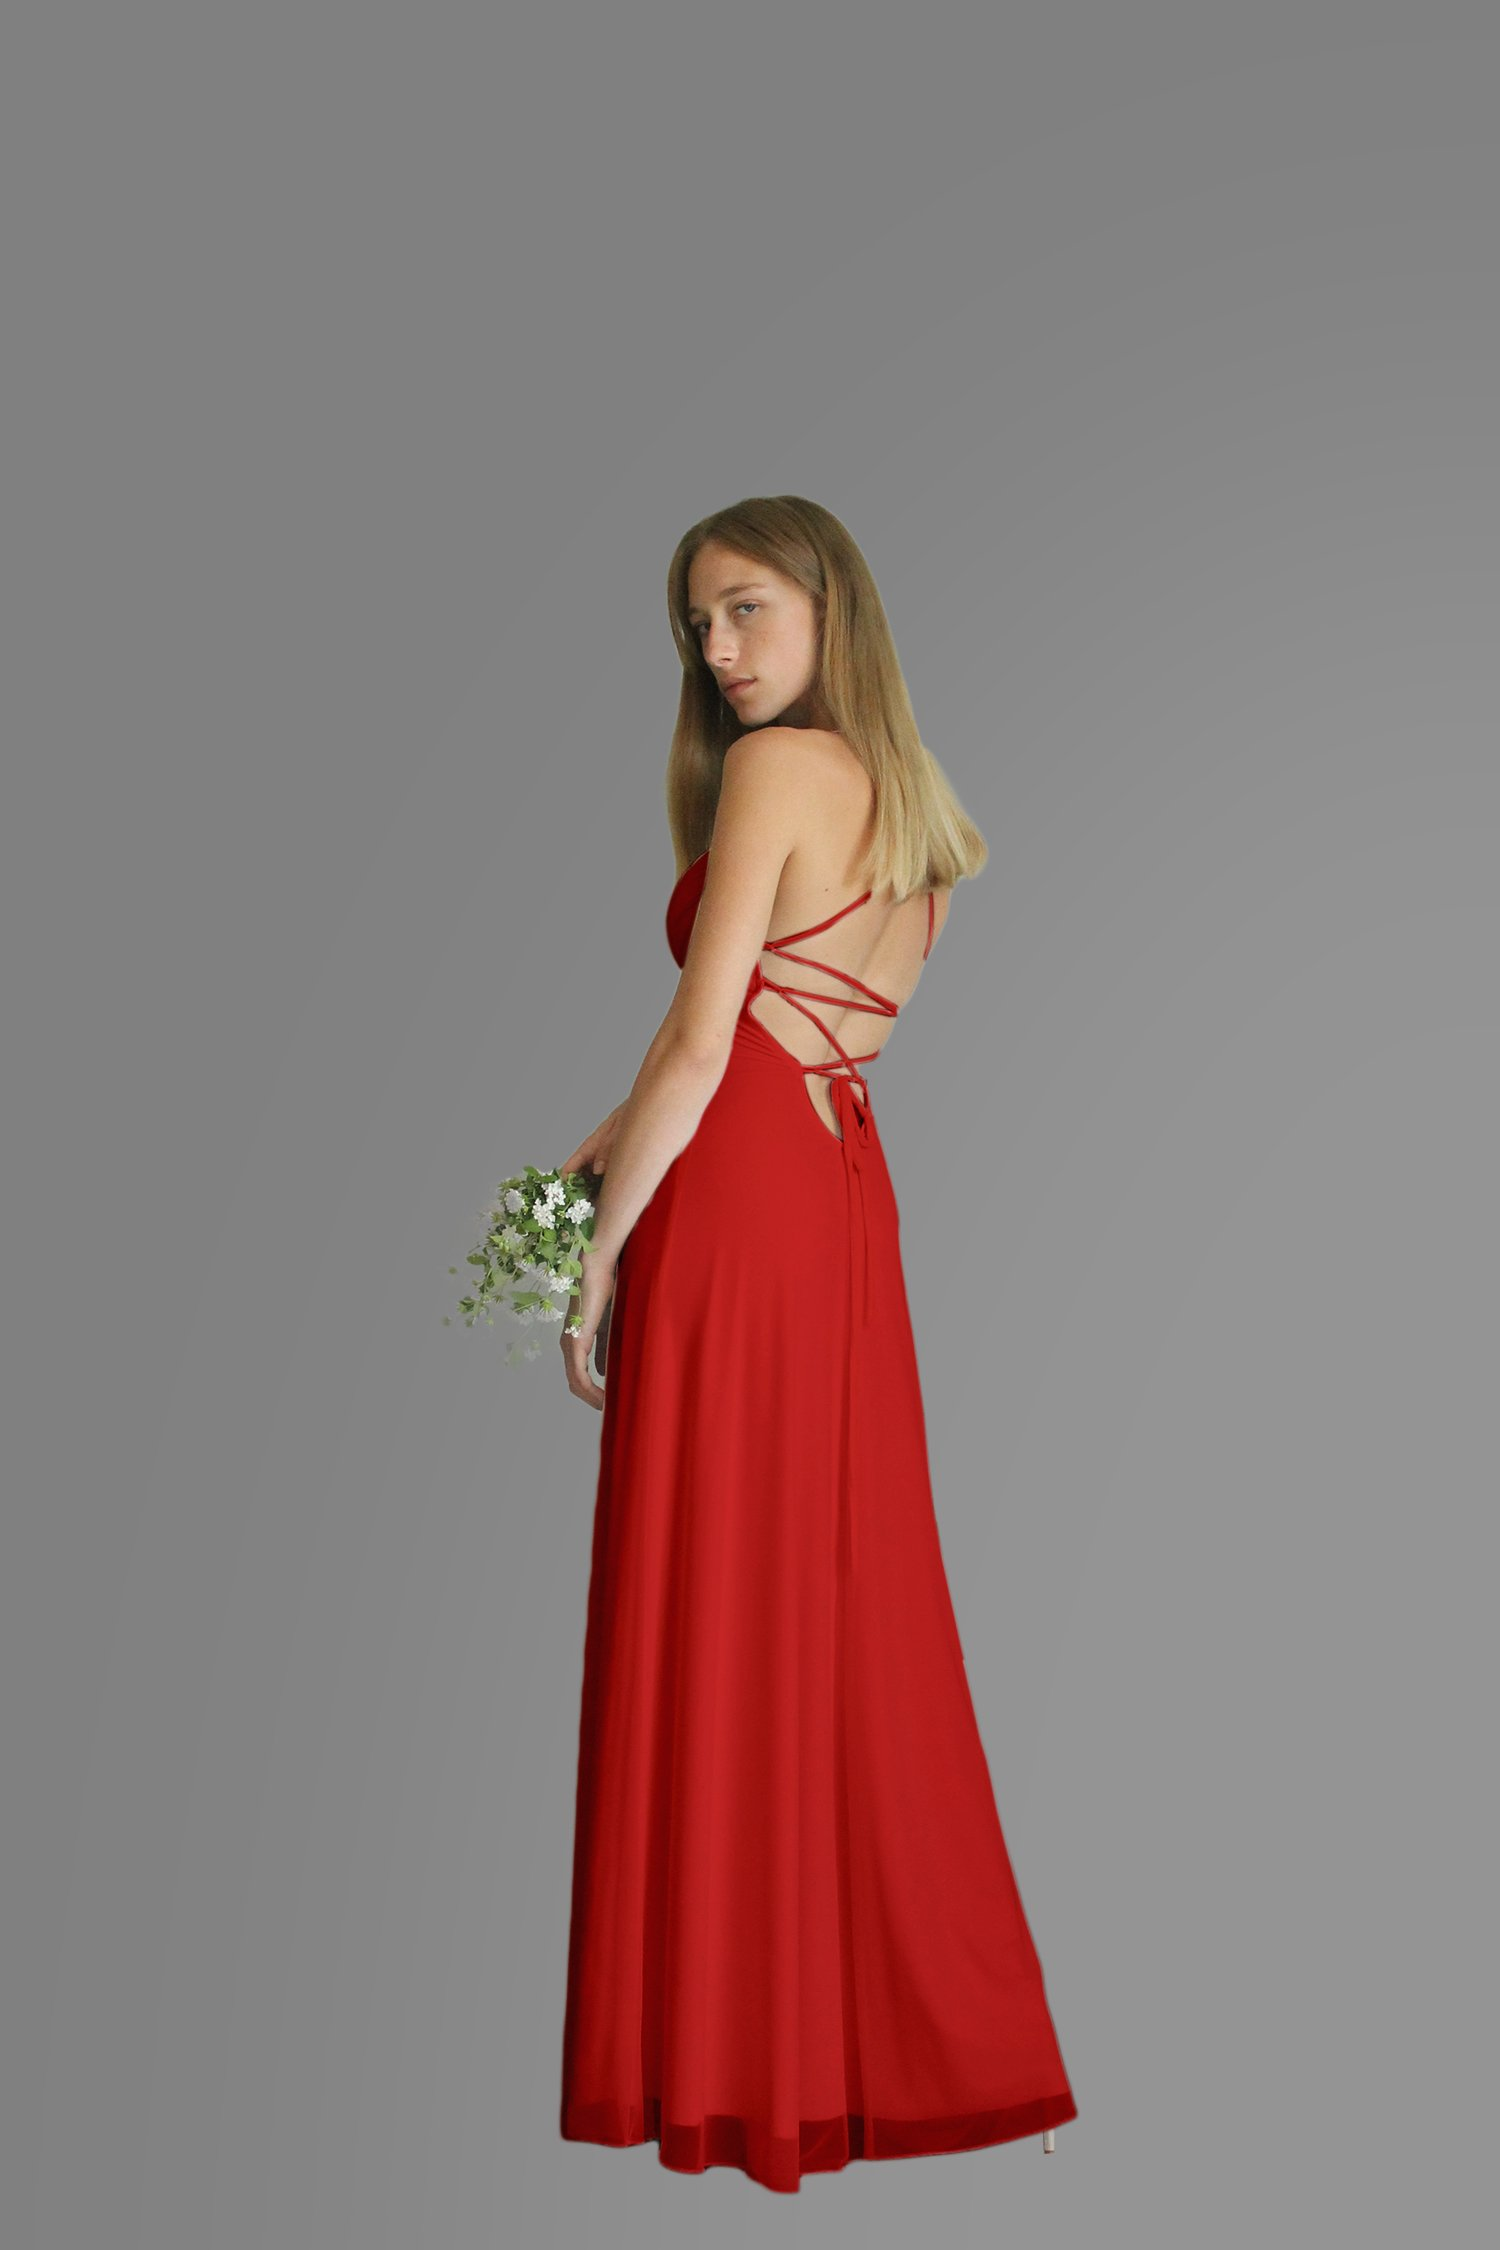 Women's Dress, Red Evening Dress, Size S, Maxi Long Dress for Wedding or Bridesmaid, Chiffon Lycra Classic Gown